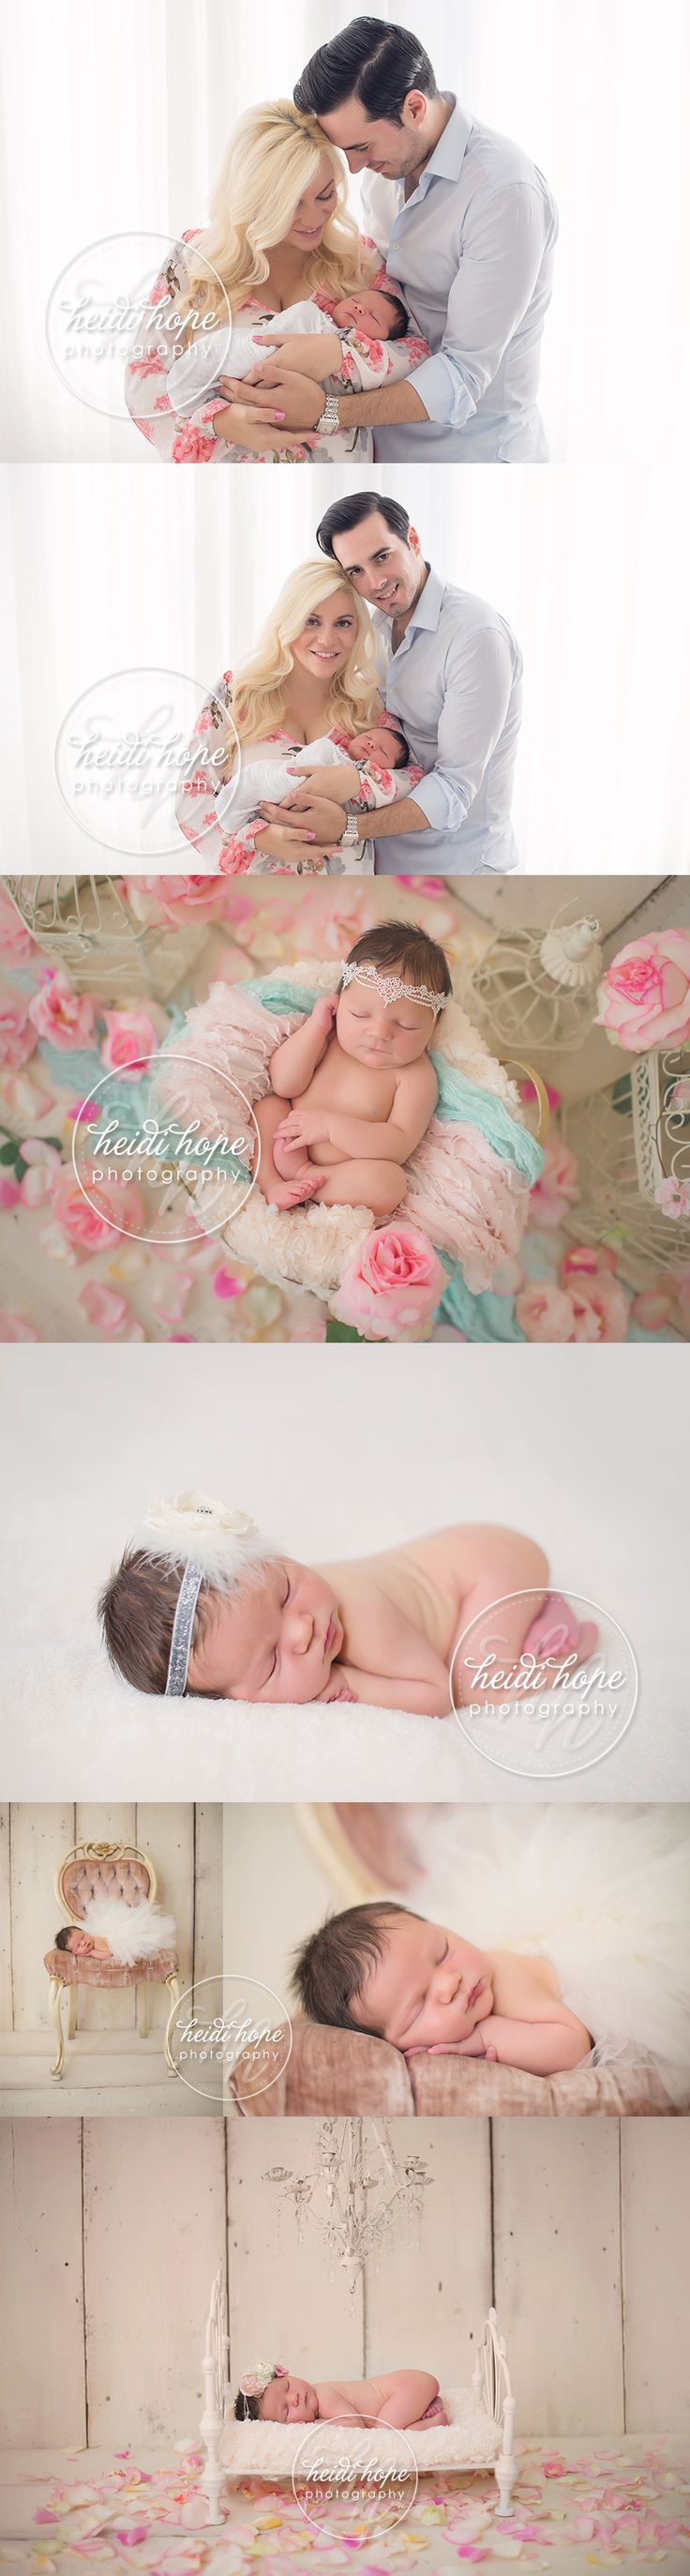 She's so fancy! Newborn baby I's session sneak peek. (Heidi Hope Photography)